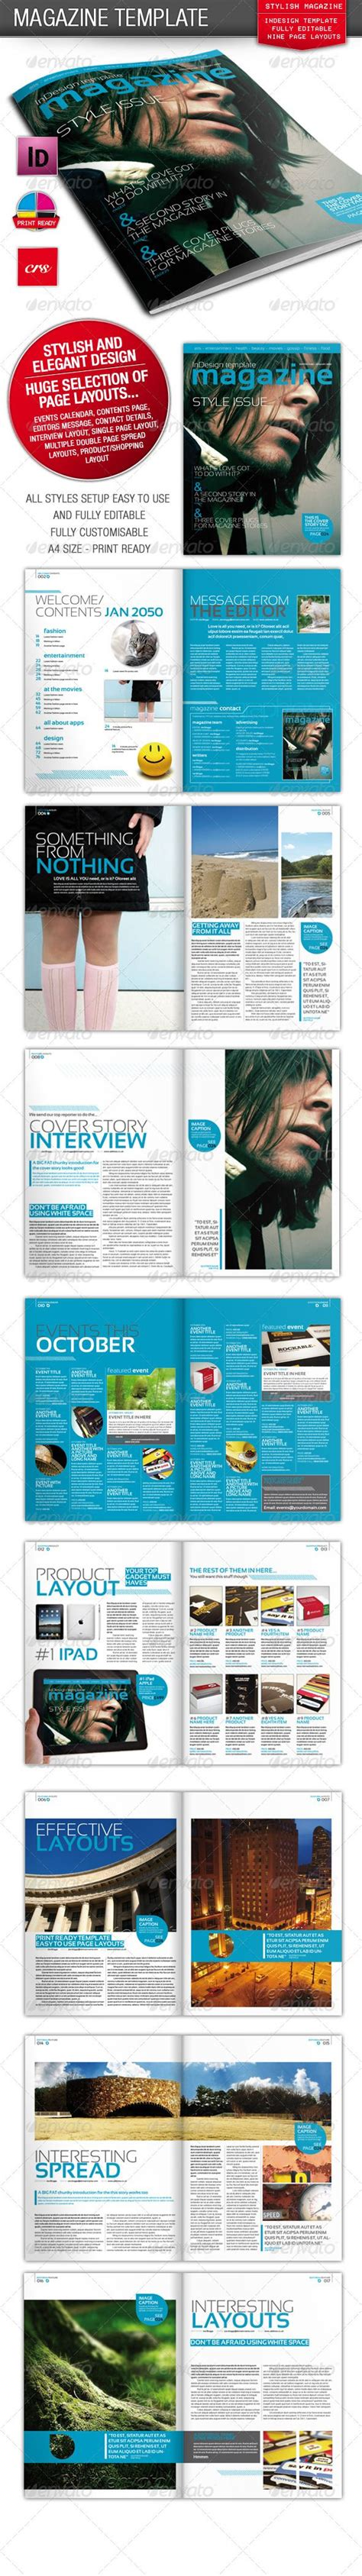 magazine layout generator 17 best images about yearbook ideas on pinterest